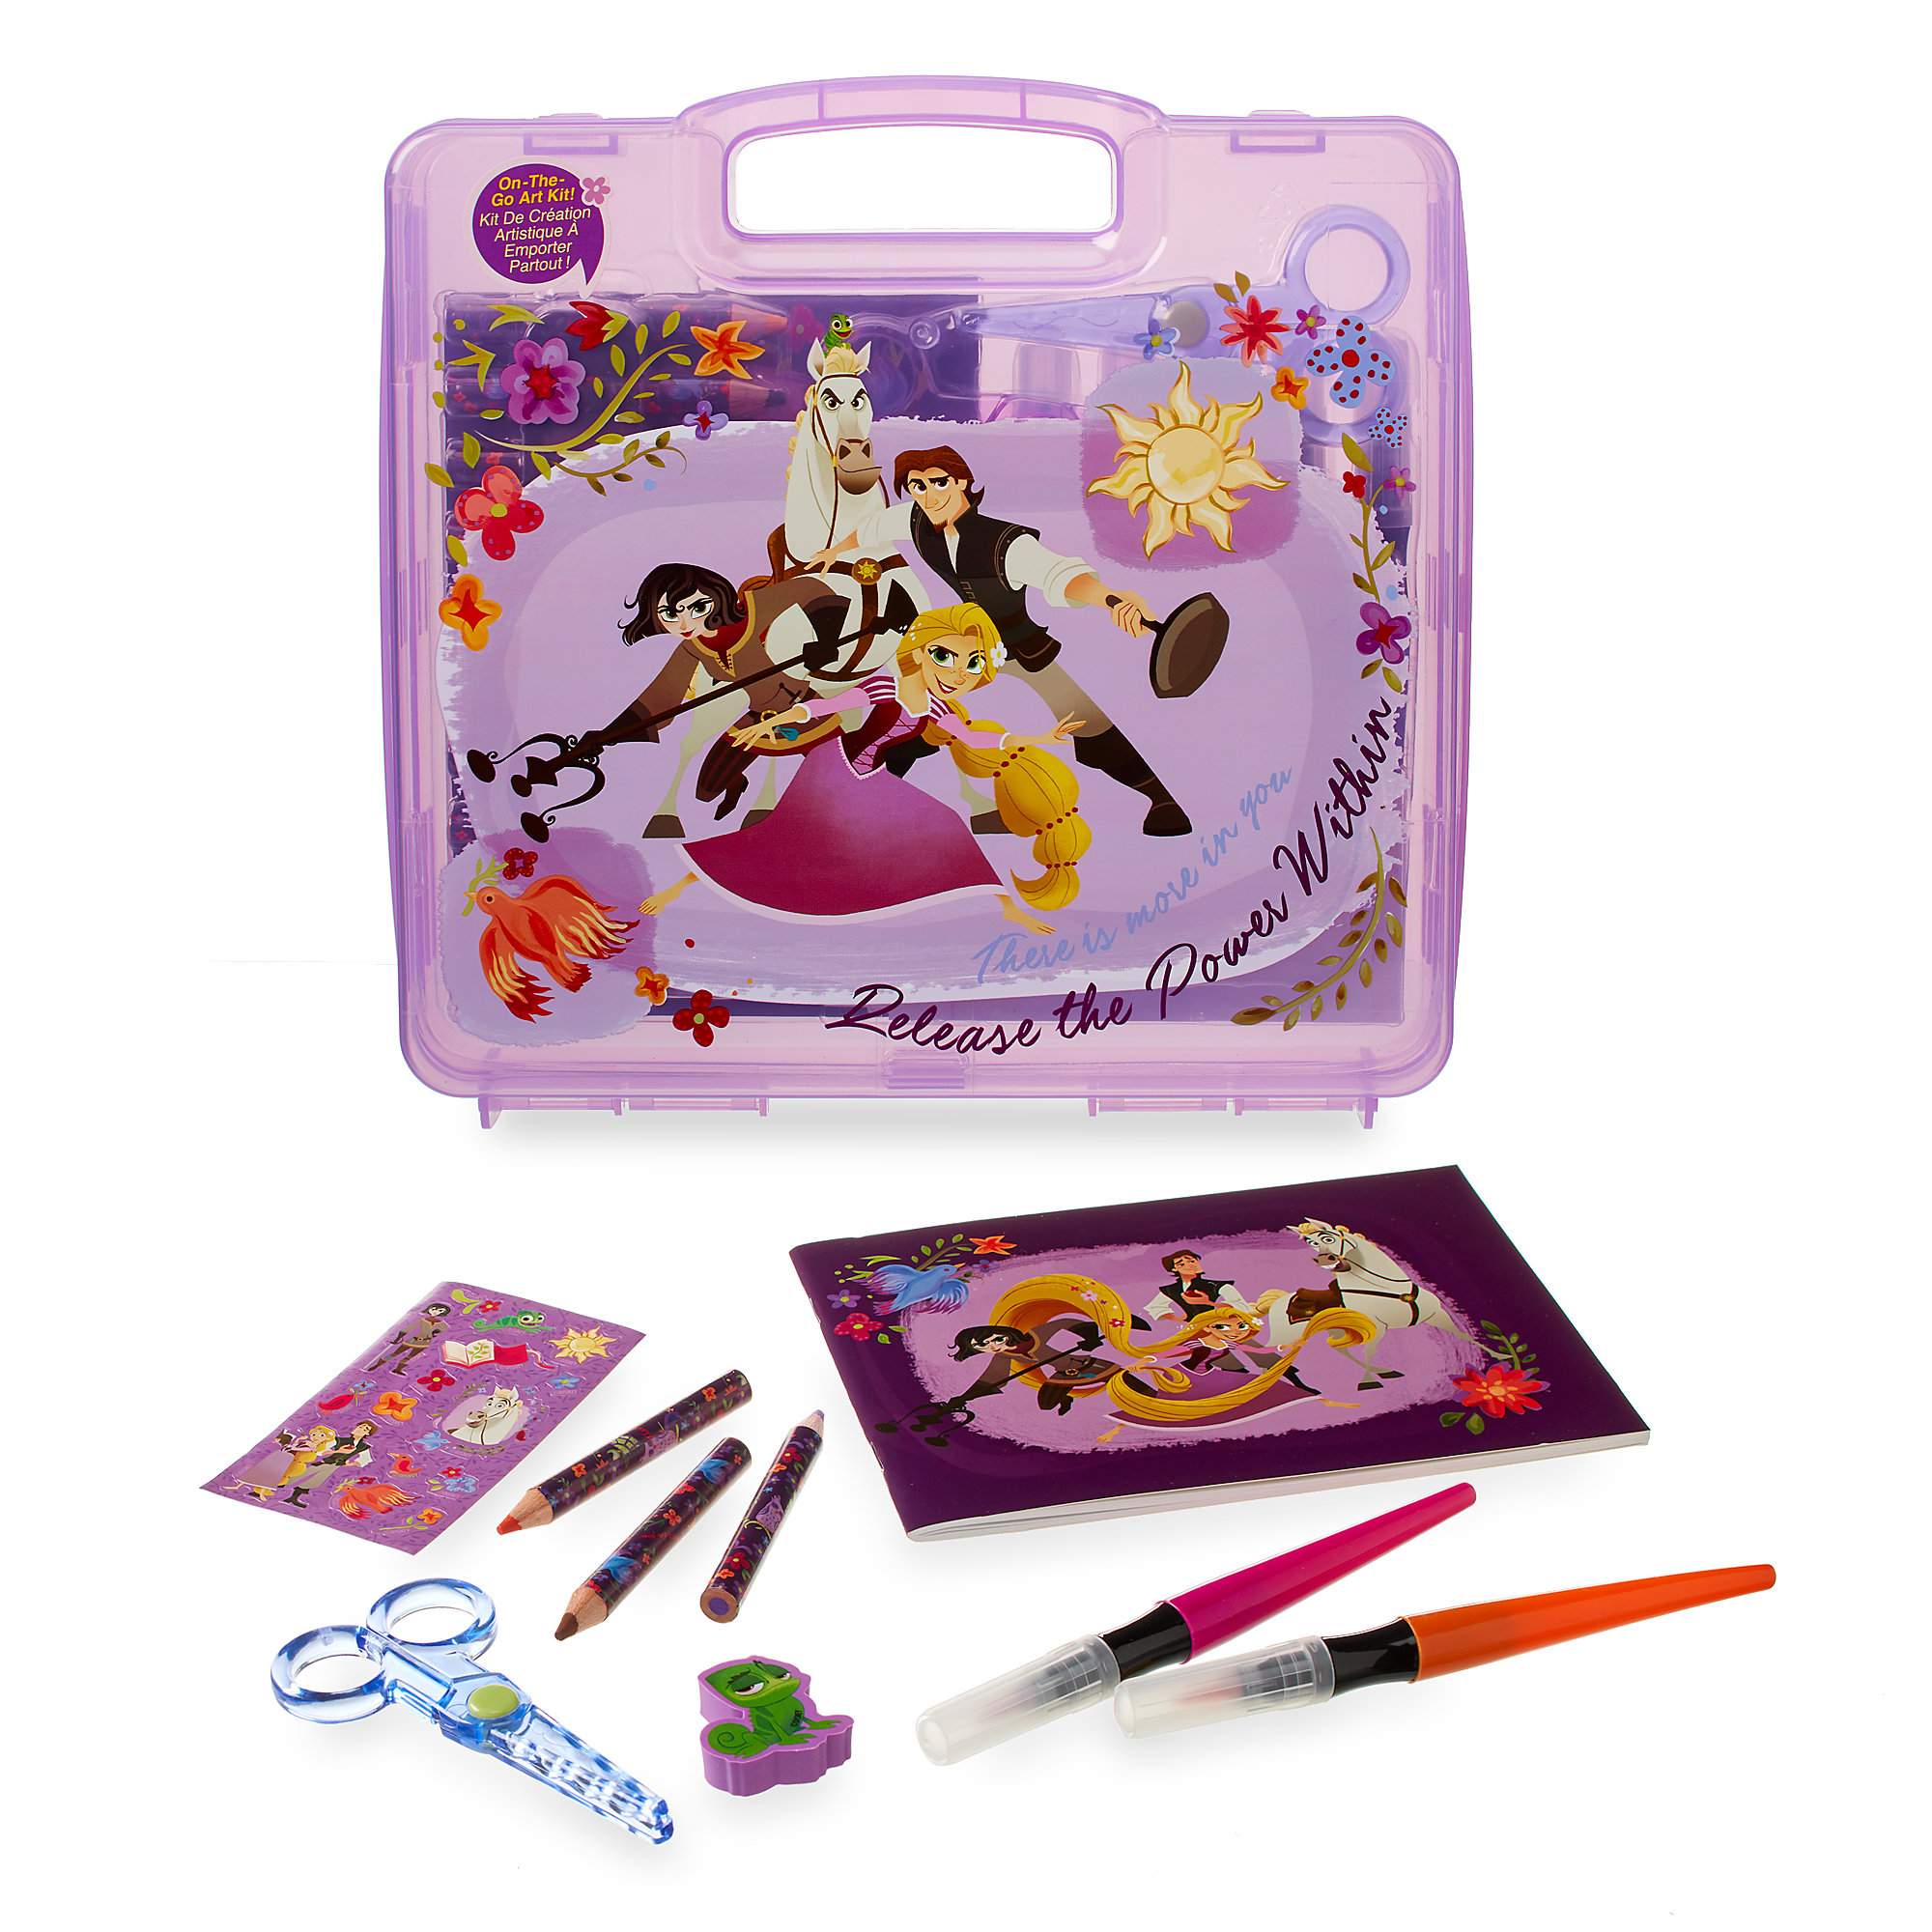 Tangled the Series On-The-Go Art Kit